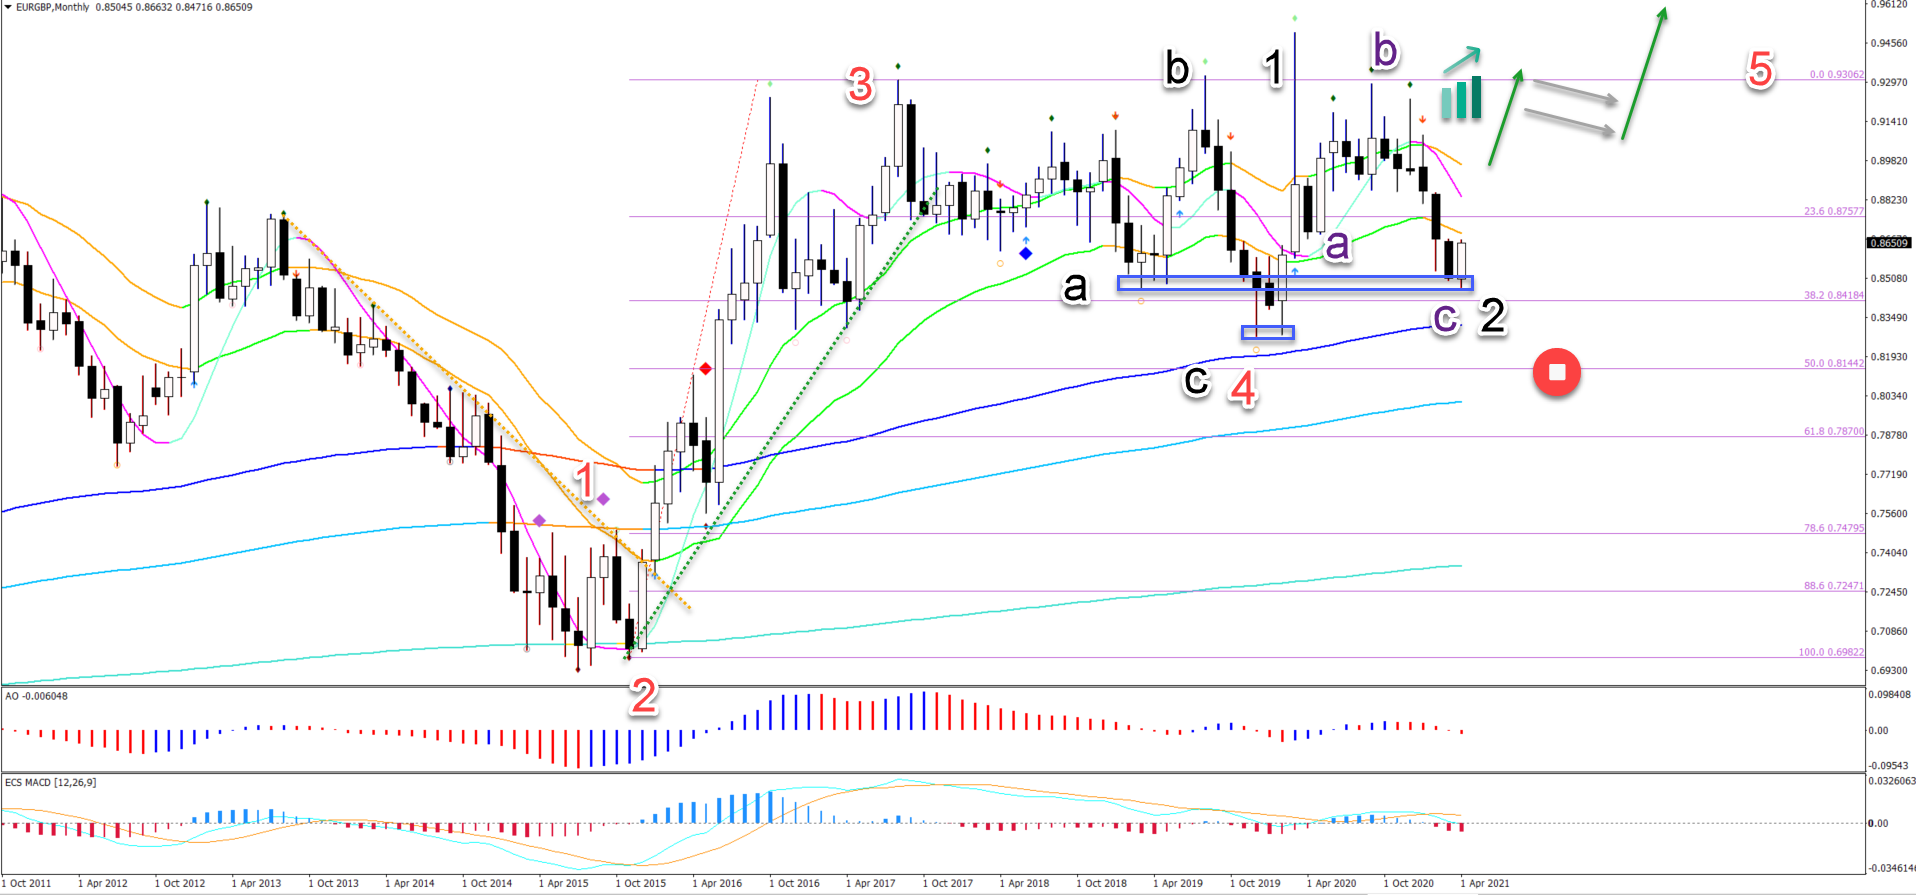 EUR/GBP 8.4.2021 monthly chart